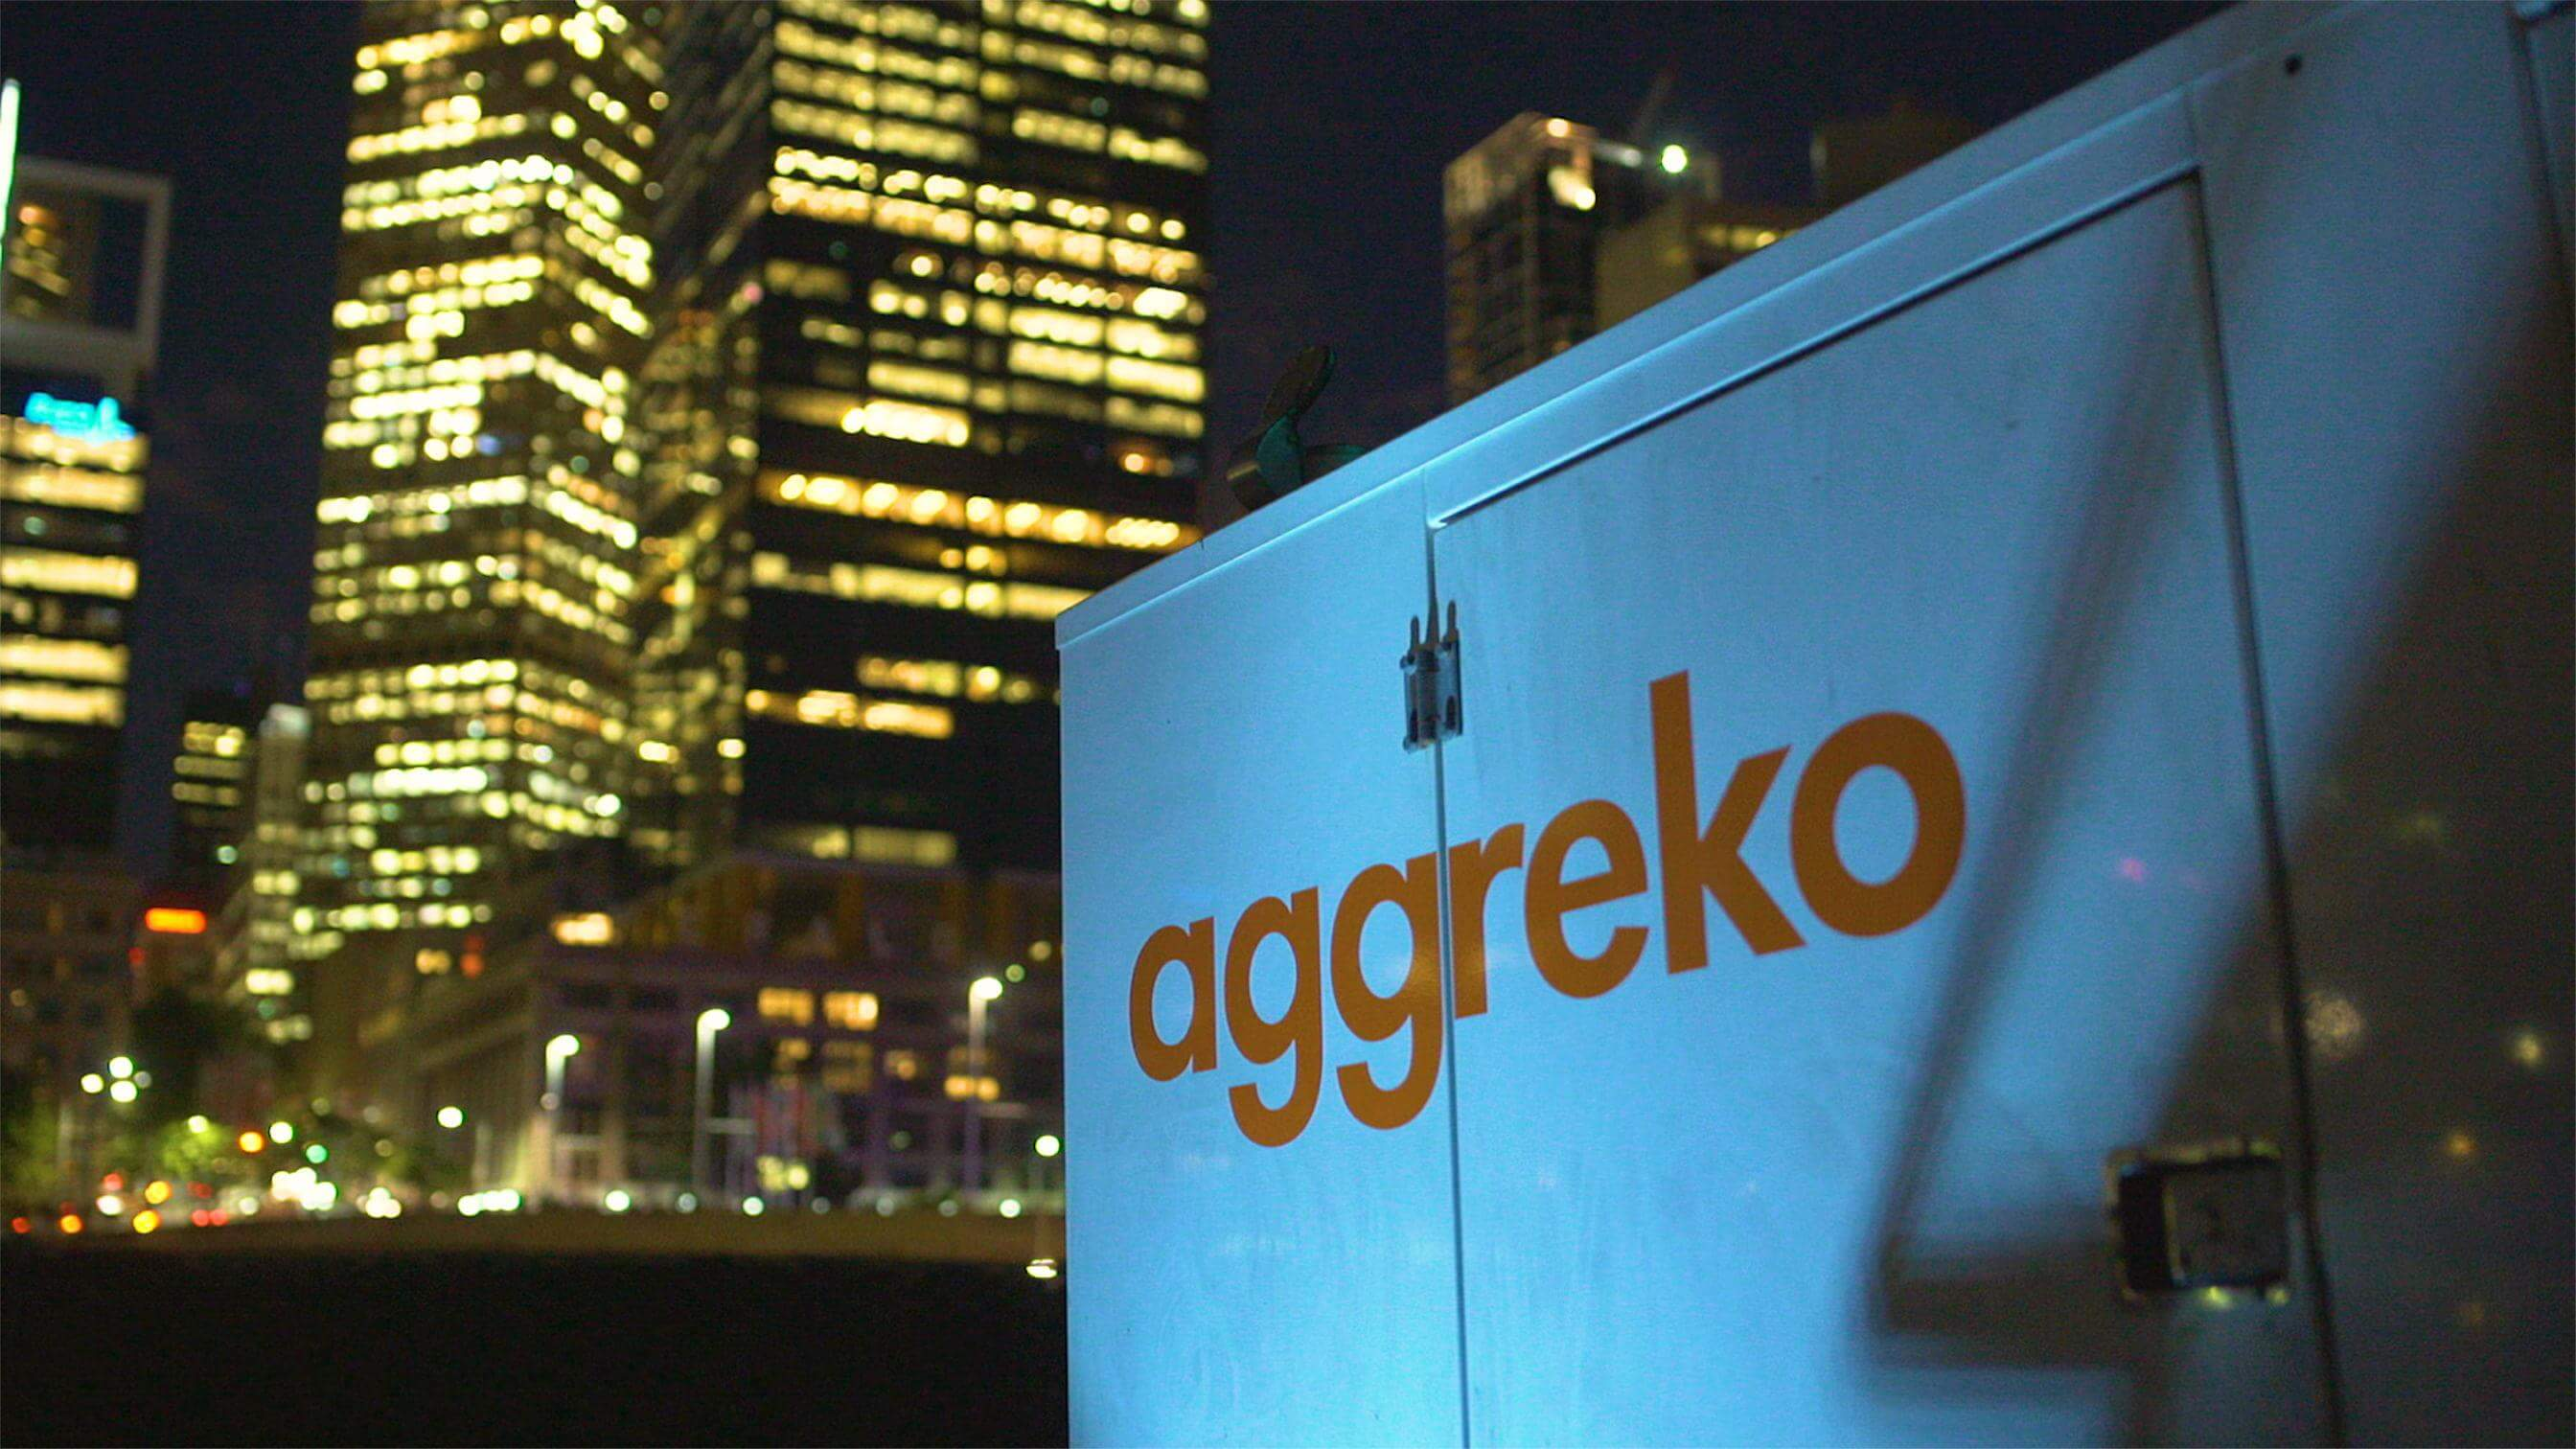 Aggreko generator with city backdrop